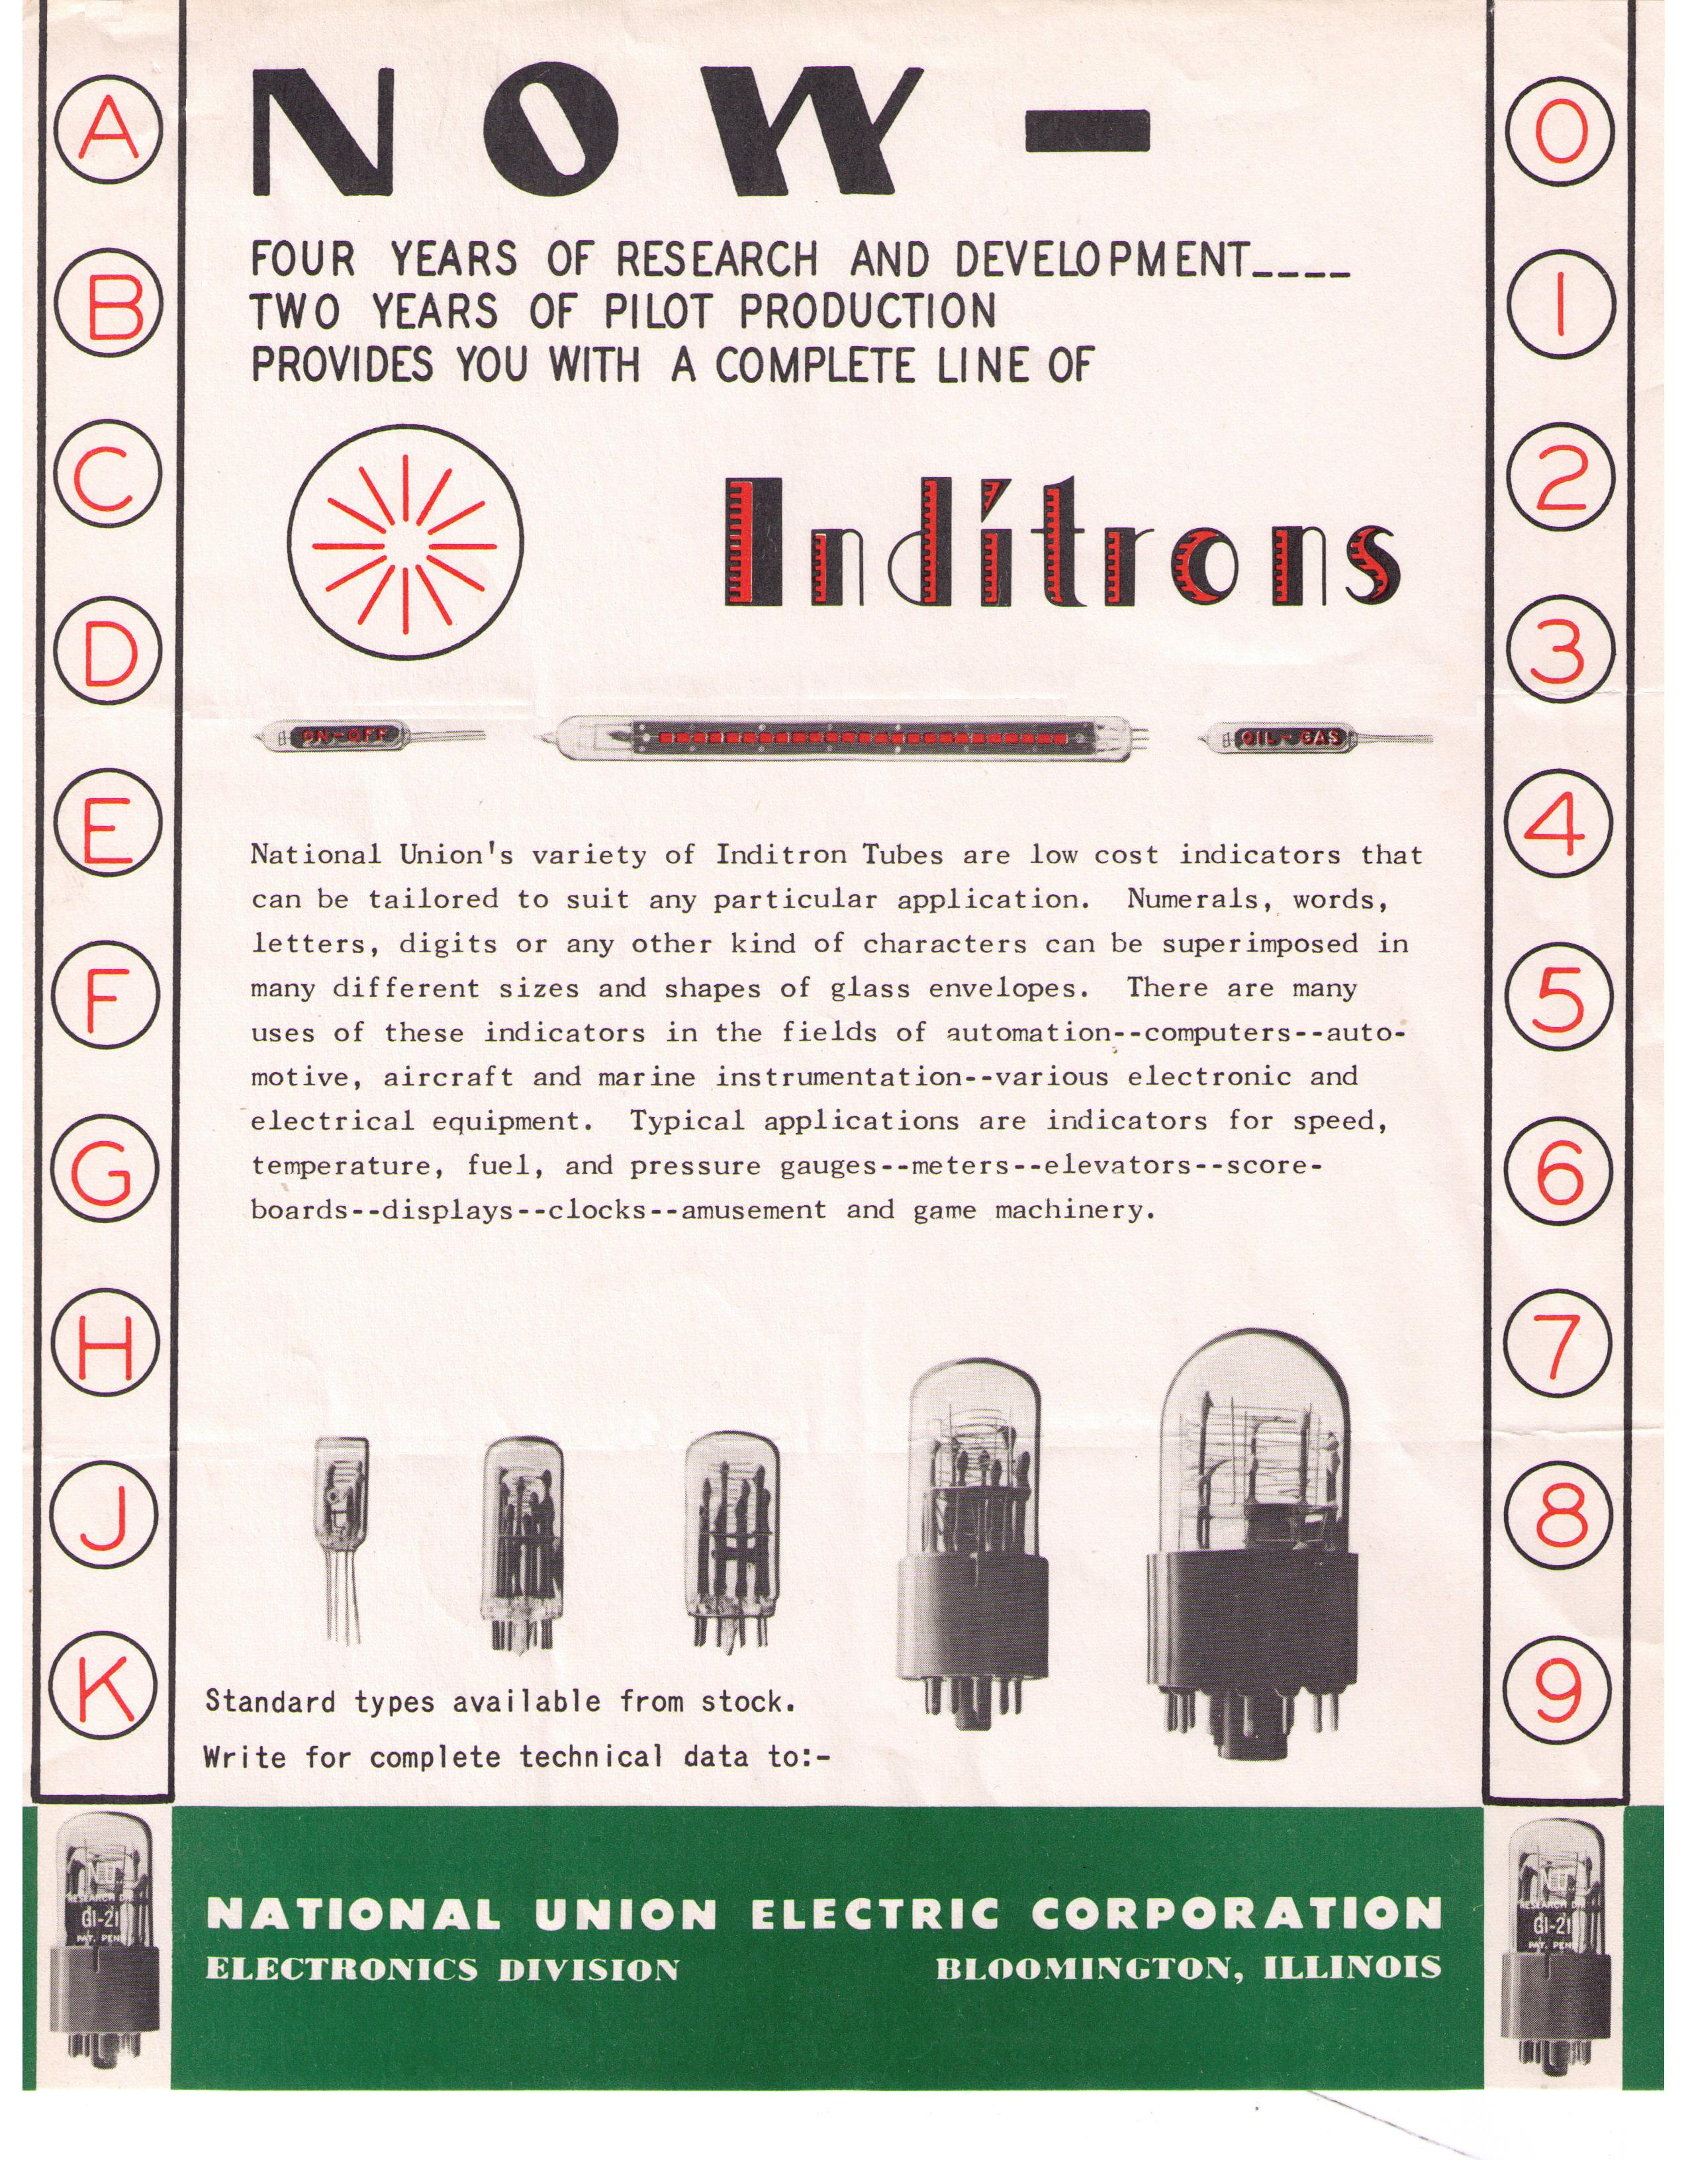 Das Inditron Promo-Sheet von National Union